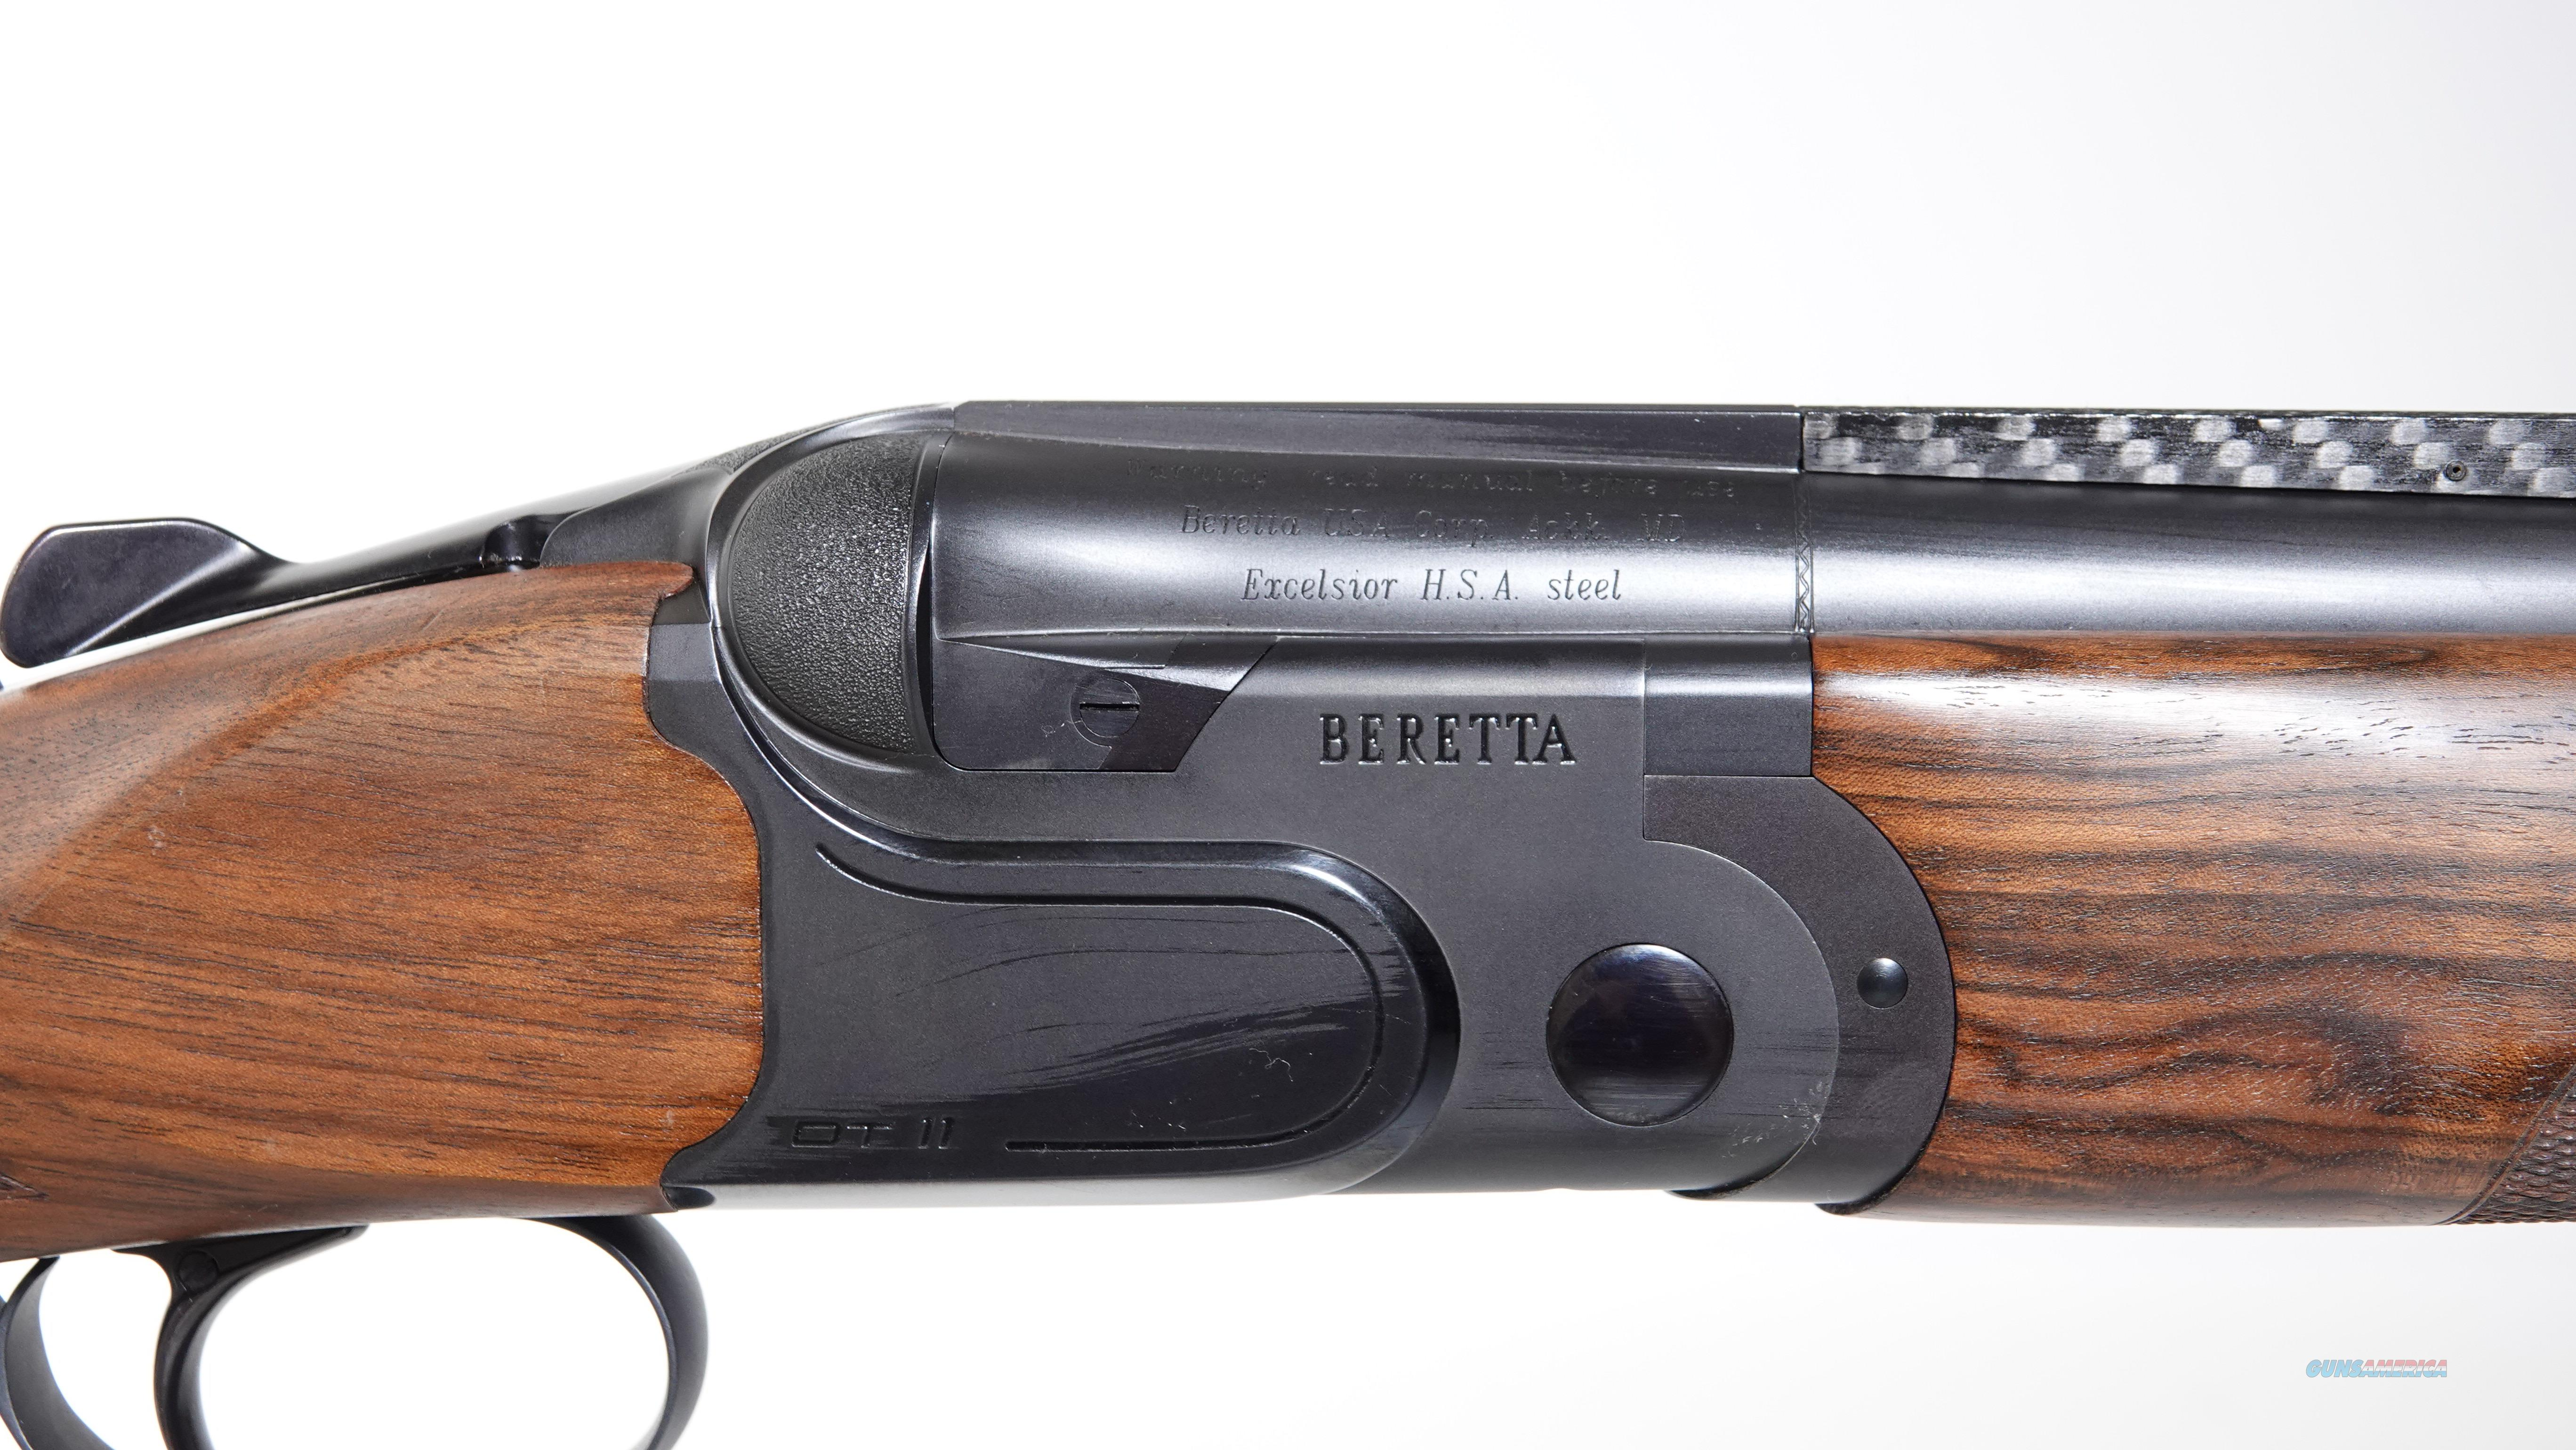 BERETTA, DT11 BLACK PRO SPORTING  12 ga.,32 in. #44173  Guns > Shotguns > Beretta Shotguns > O/U > Trap/Skeet